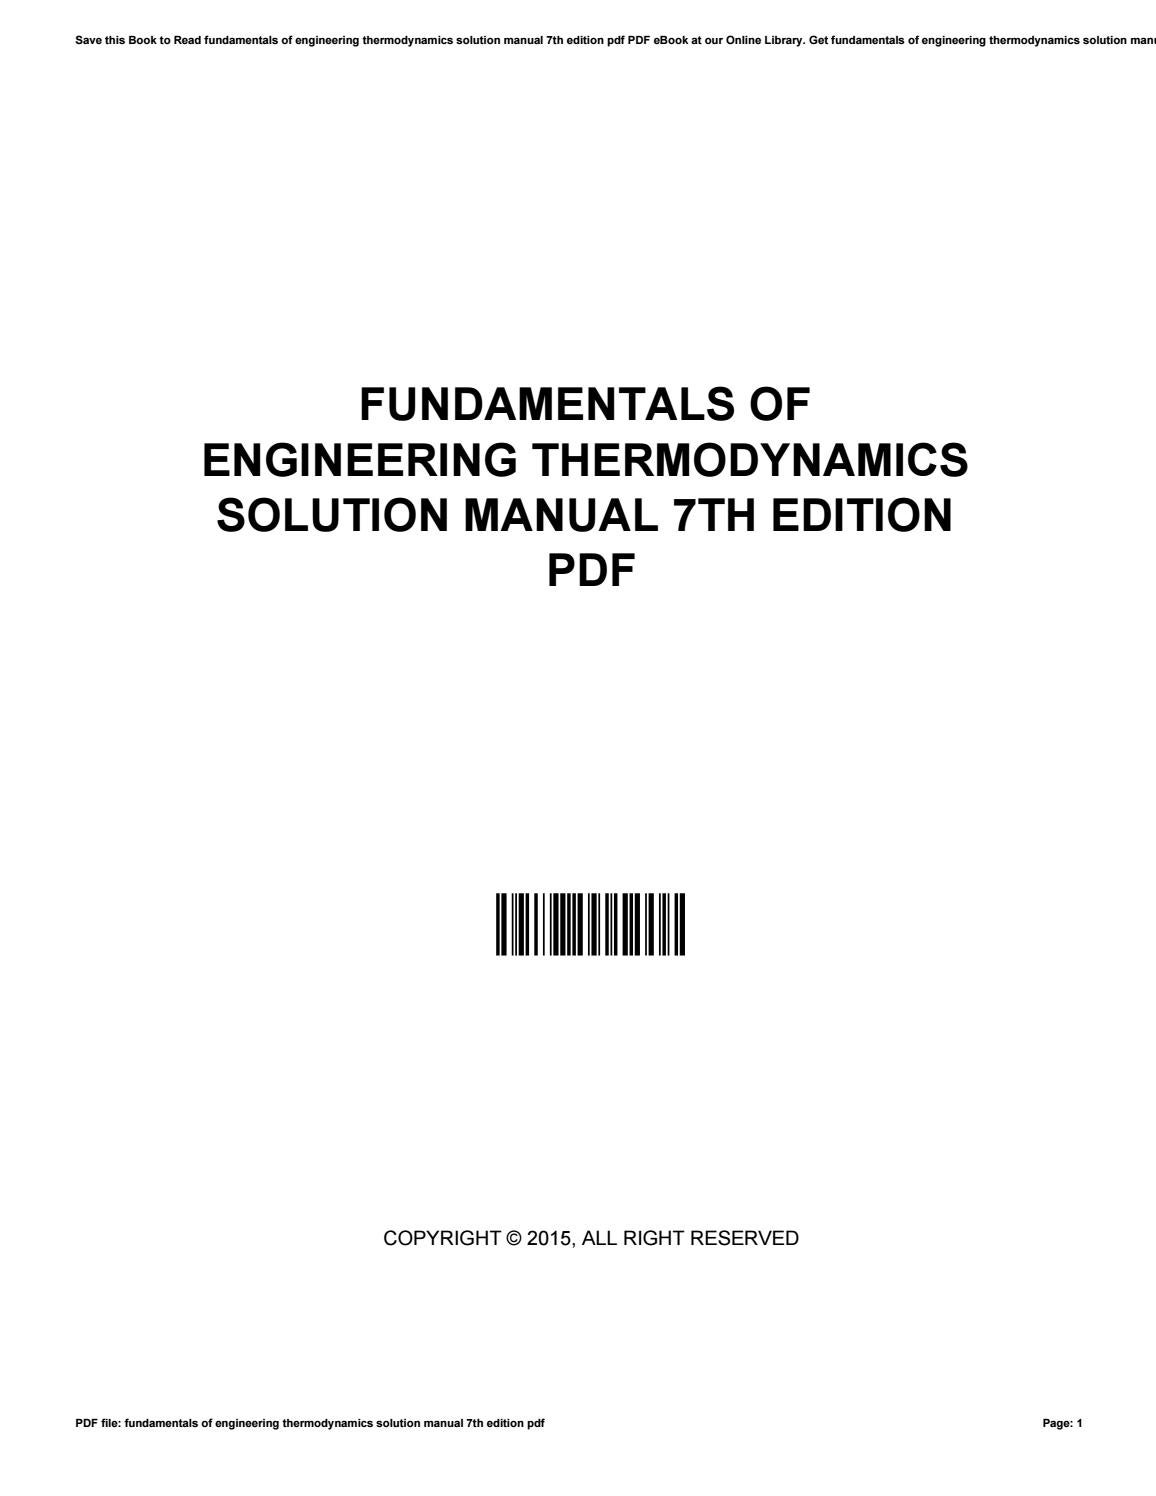 Fundamentals of engineering thermodynamics solution manual 7th edition pdf  by MichealTate3821 - issuu